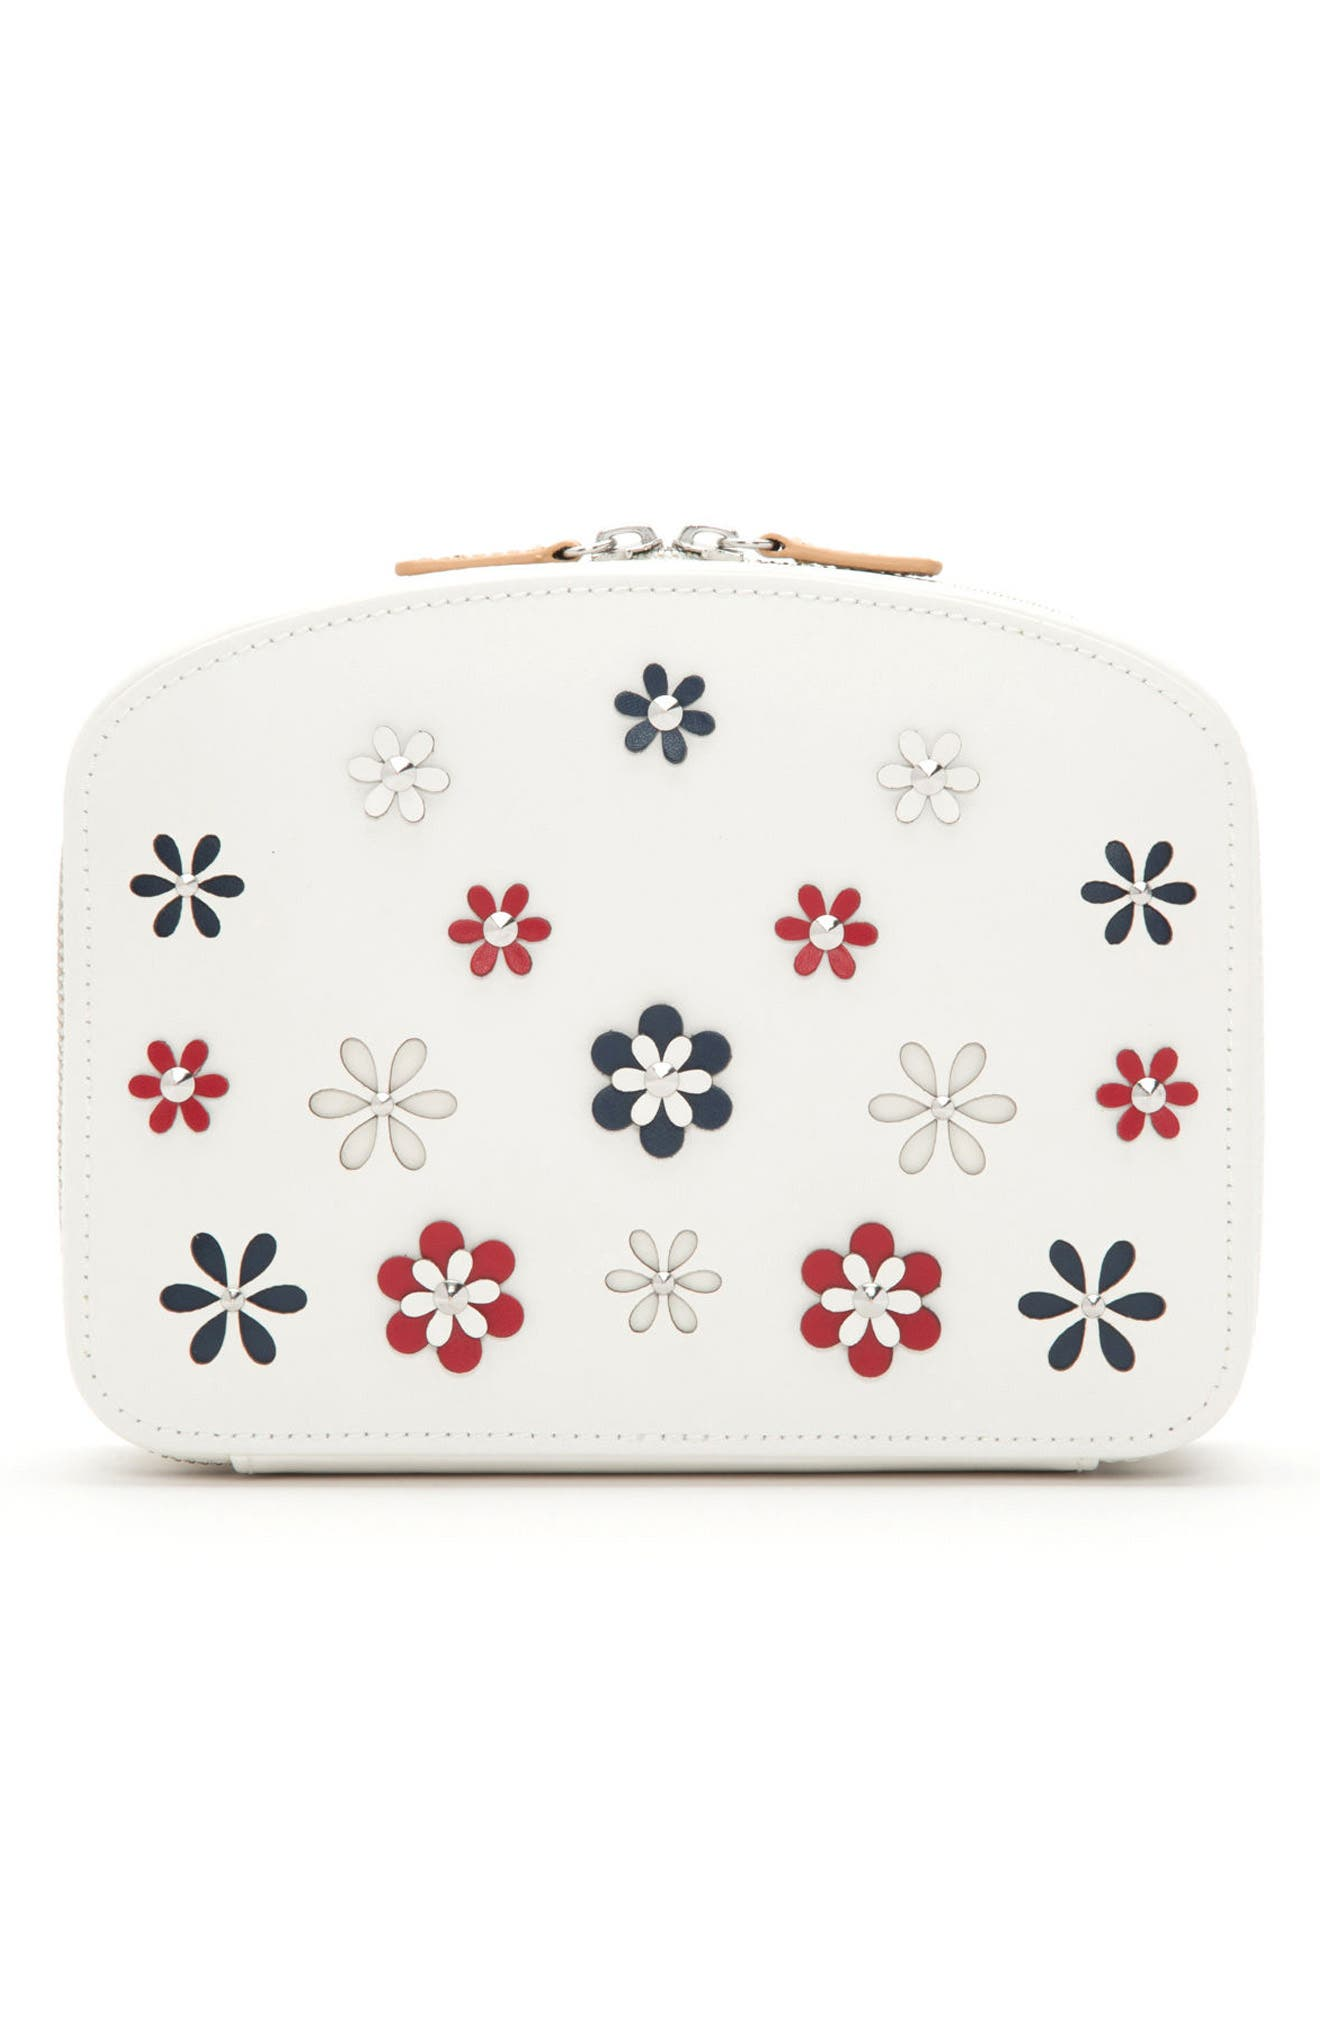 Blossom Leather Travel Jewelry Case,                         Main,                         color, Ivory